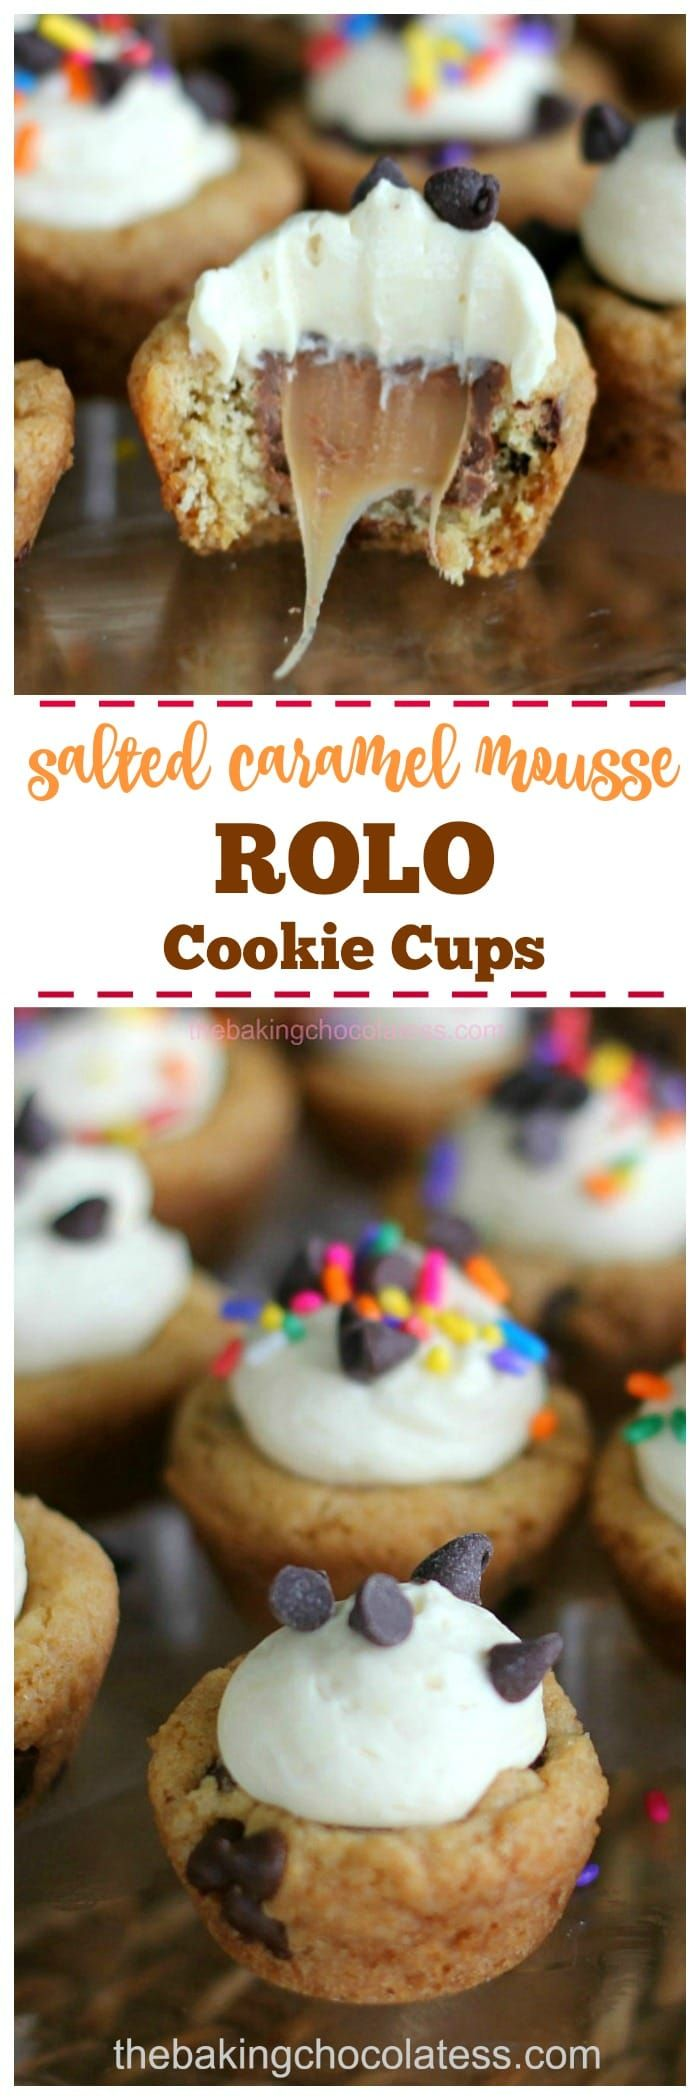 Salted Caramel Mousse ROLO Cookie Cups - Who could…